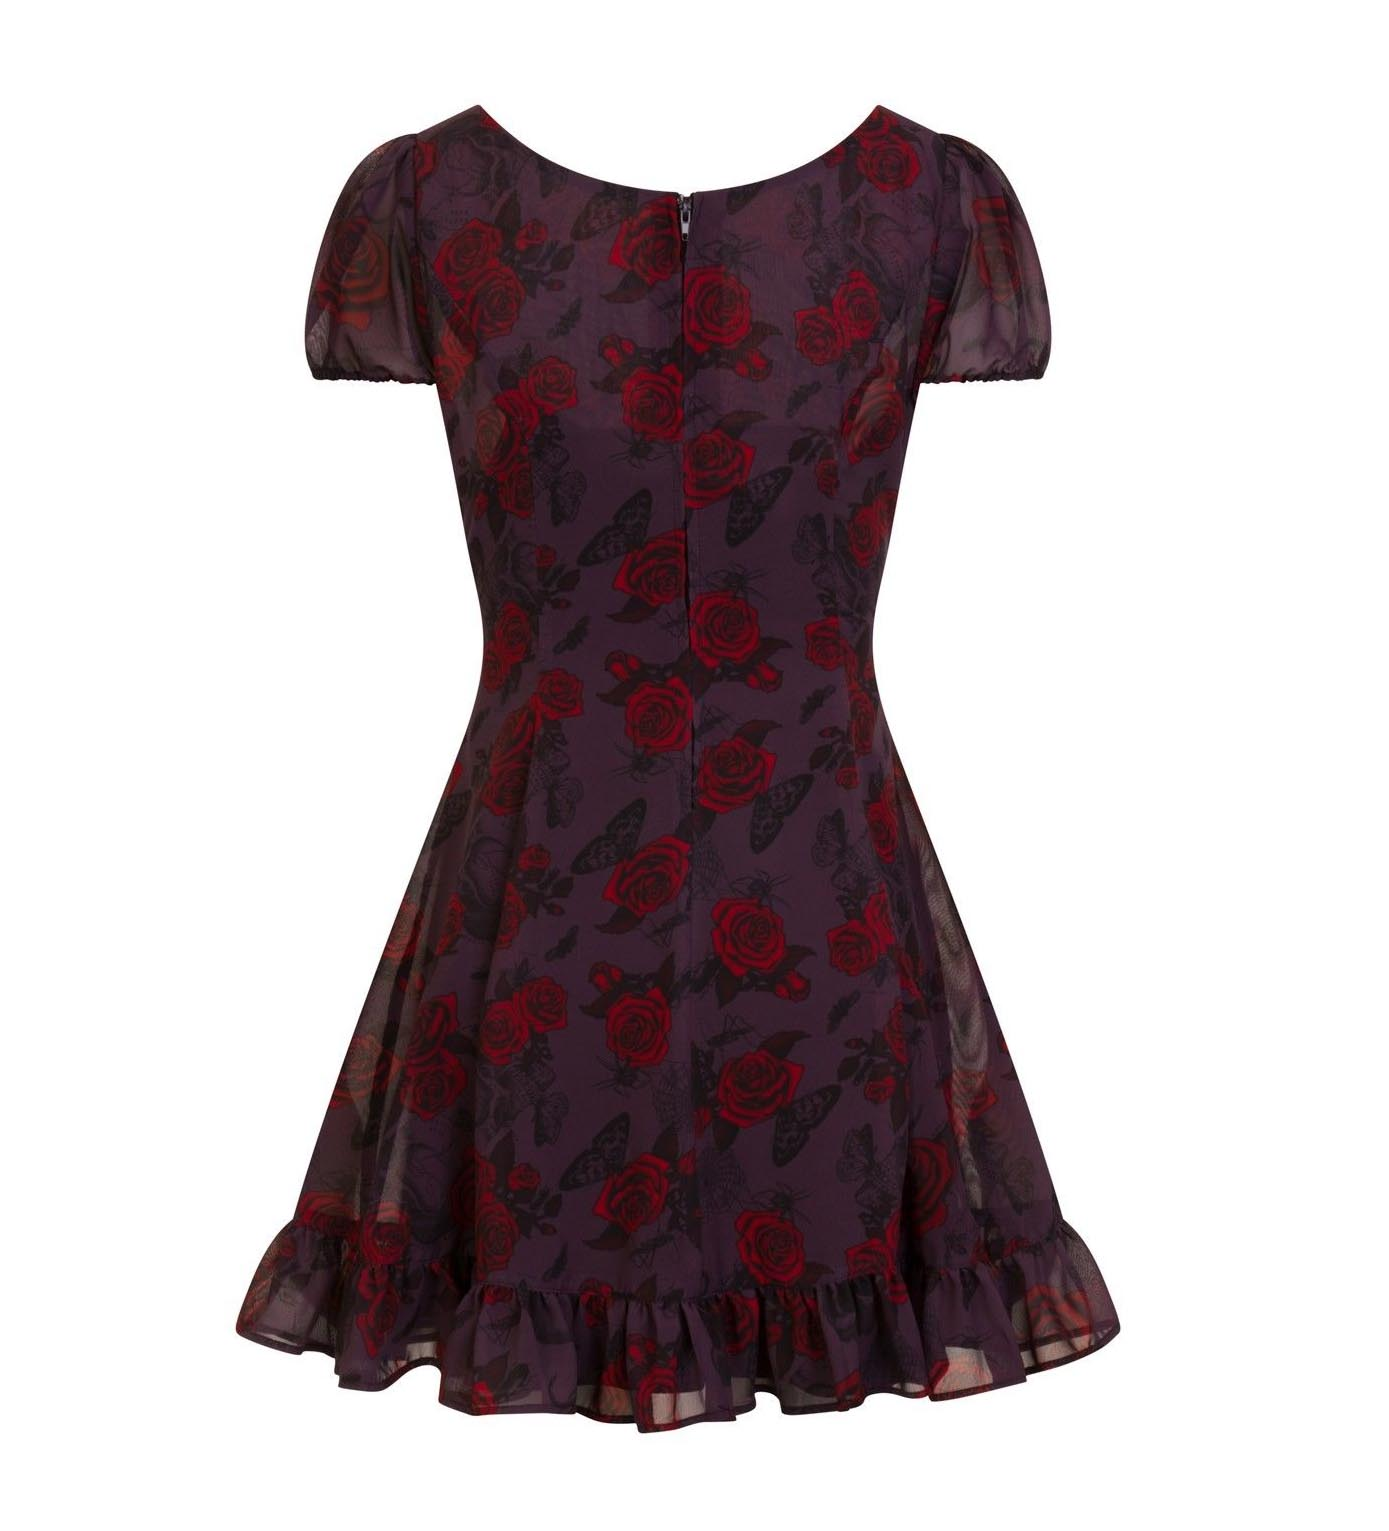 Hell-Bunny-Goth-Floaty-Mini-Dress-BUGS-amp-ROSES-Skulls-Butterfly-Purple-All-Sizes thumbnail 43